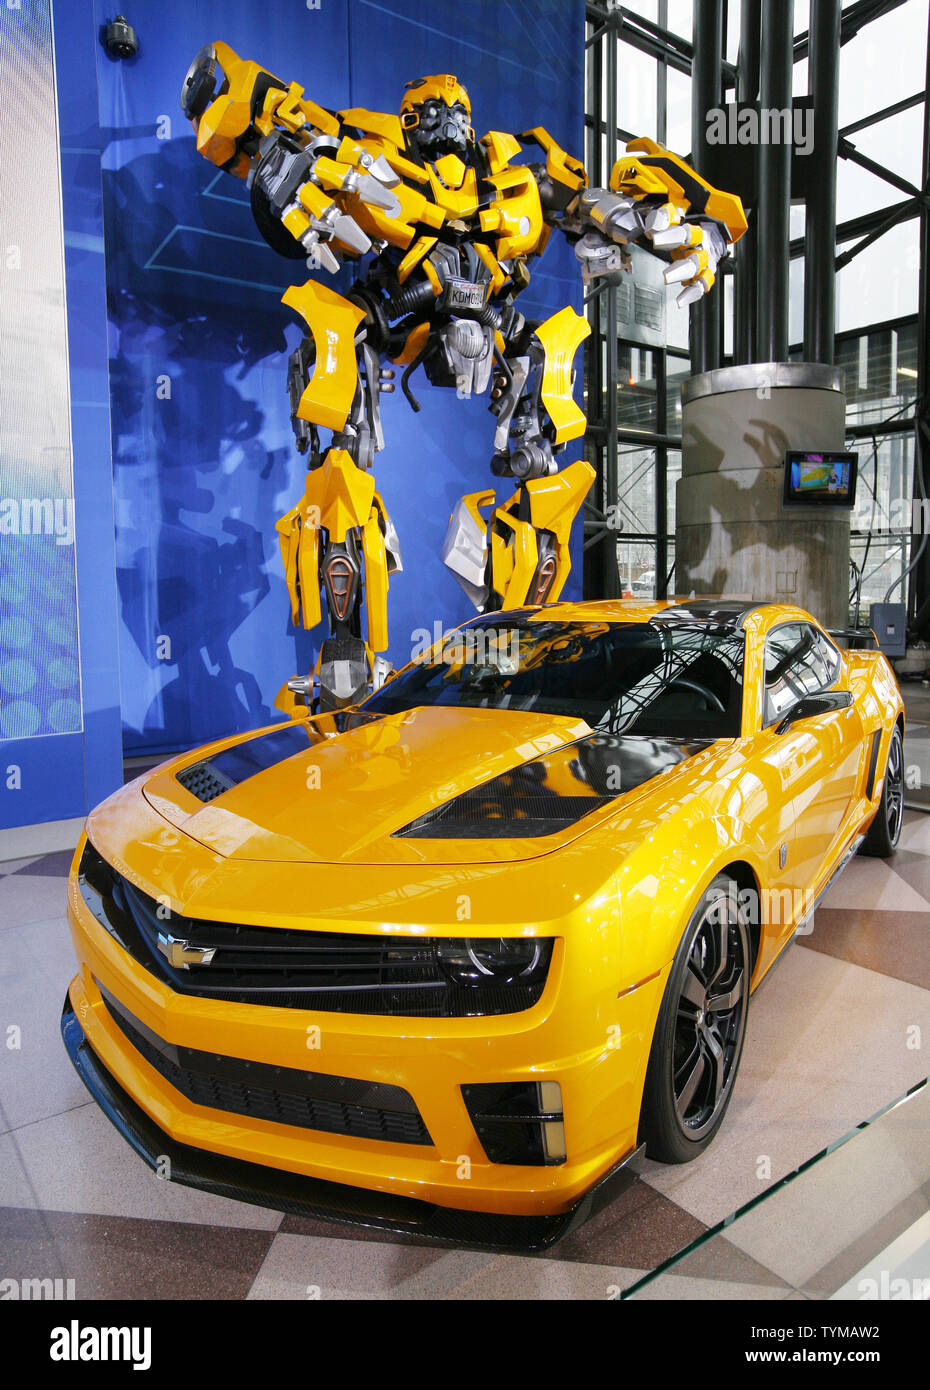 Chevrolet's Bumblebee car, which will be featured in the